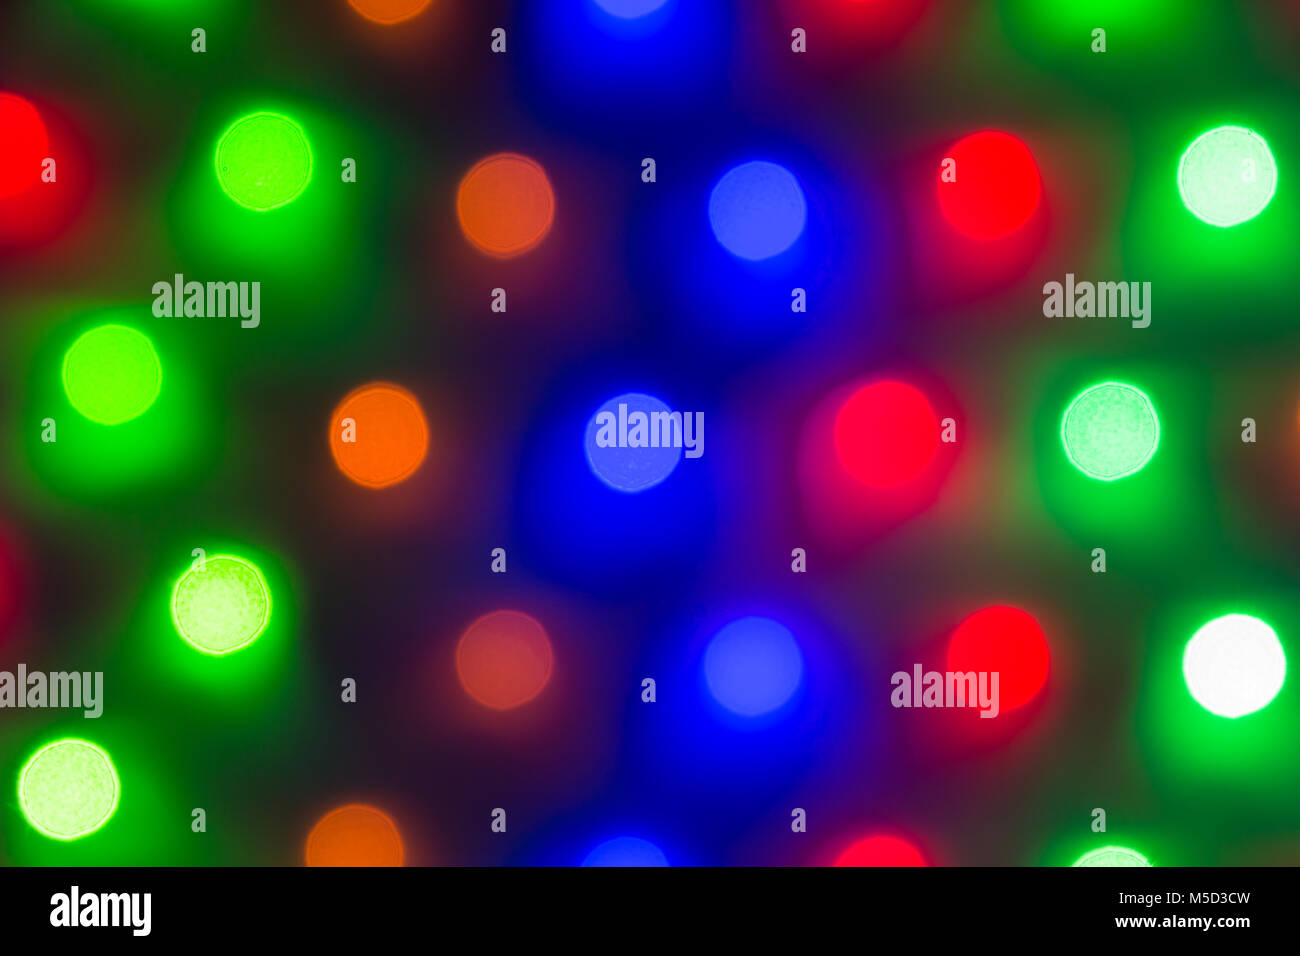 Abstract image of defocused varicolored round lights in a row closeup - Stock Image